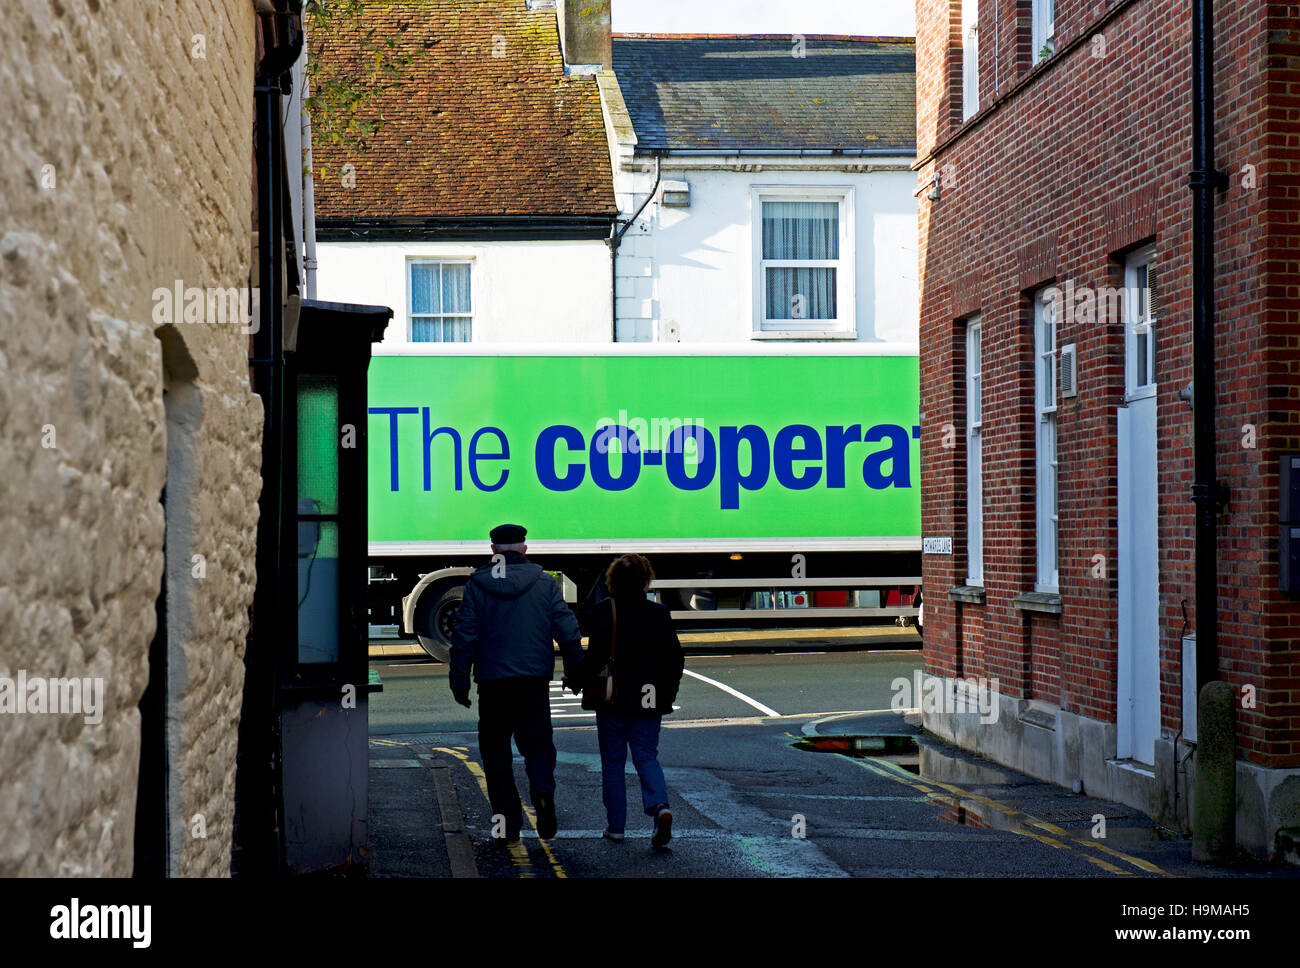 Co-op delivery lorry, parked on street, England UK - Stock Image